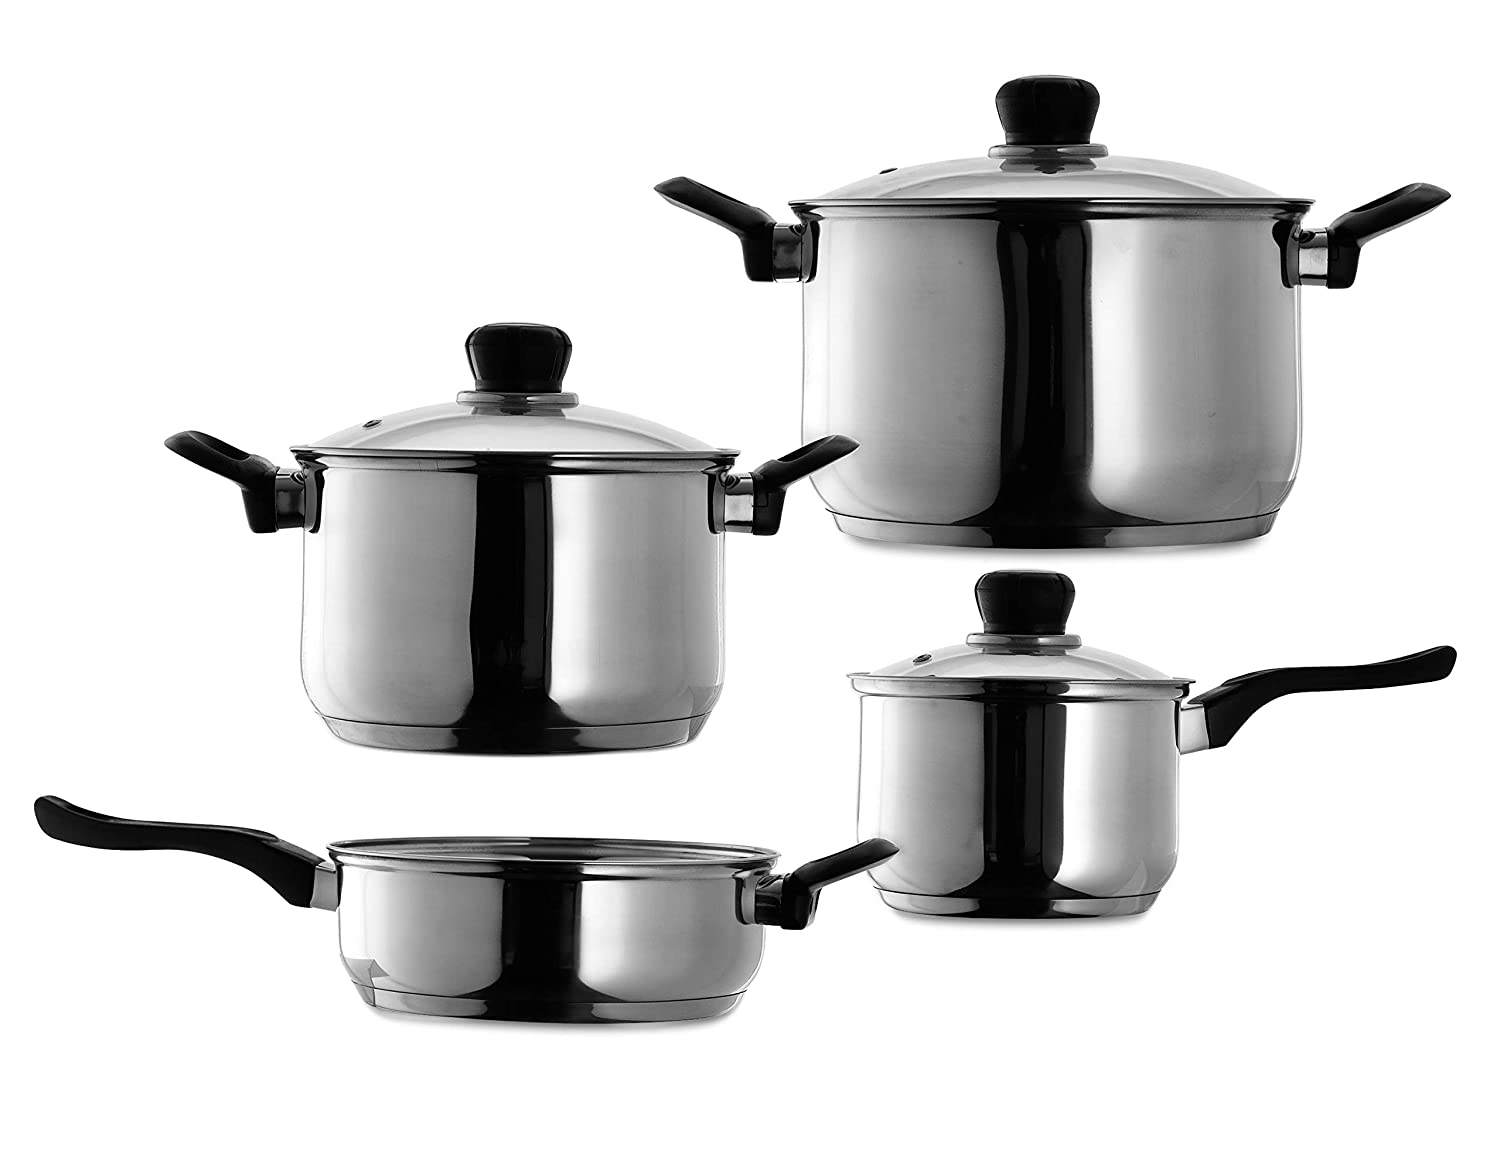 7 Piece Stainless Steel Heavy-Duty Cookware, 5 Capsule, 5 mm thick bottom with heat conduction, Dutch oven Pots and Pan with Bakelite Handles, Compatible to Multi-Stove Tops